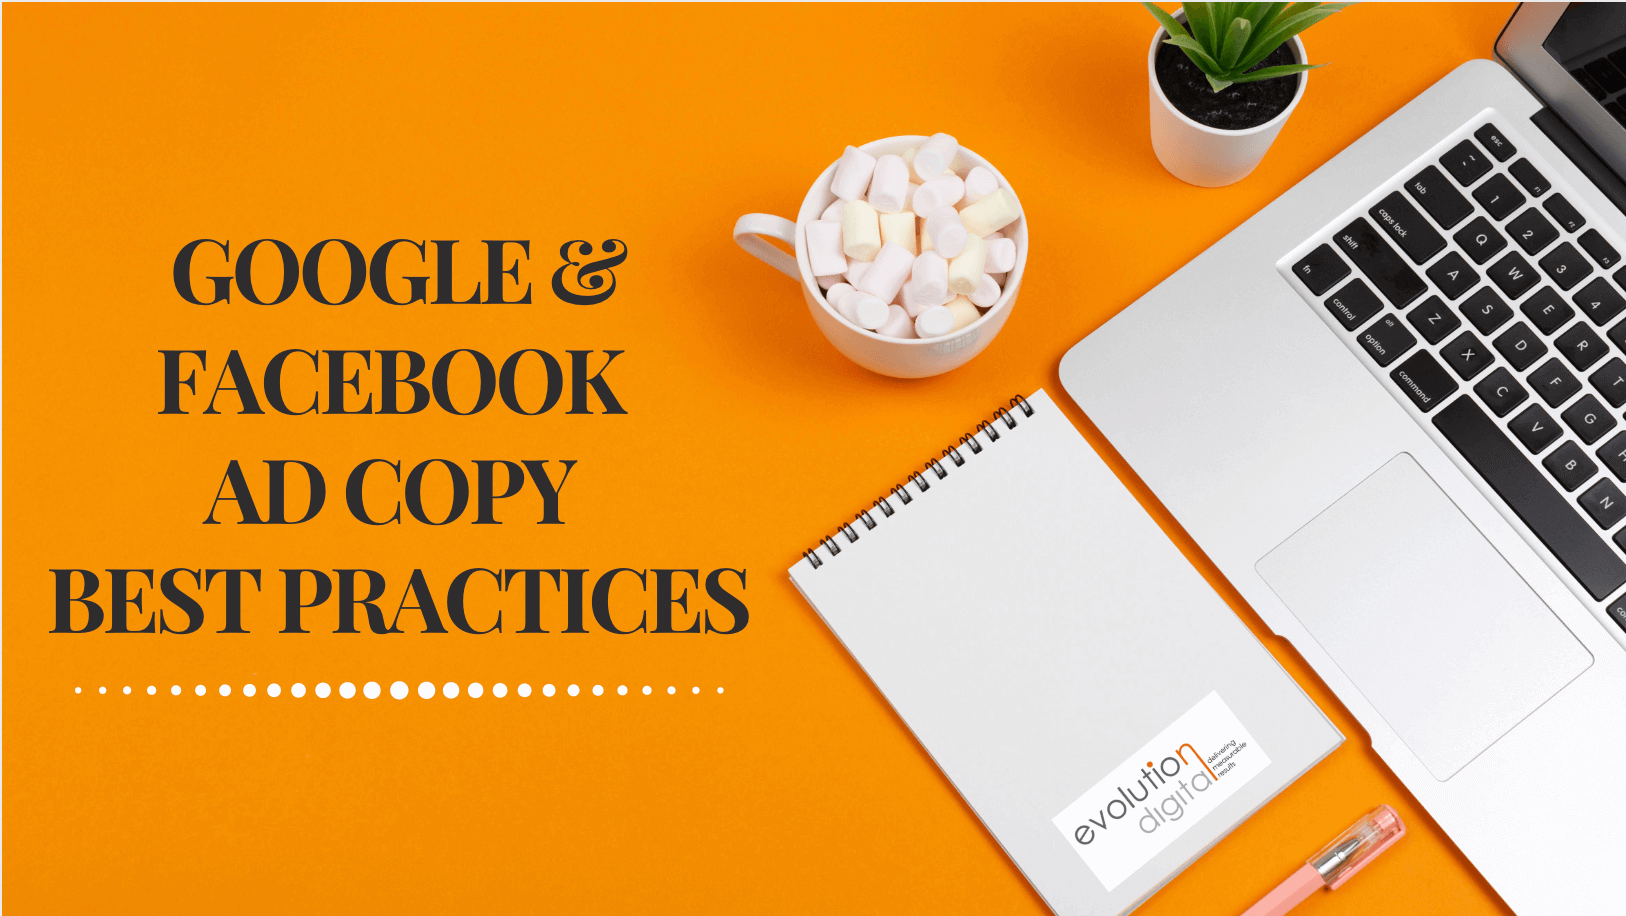 ad copy tips ppc facebook